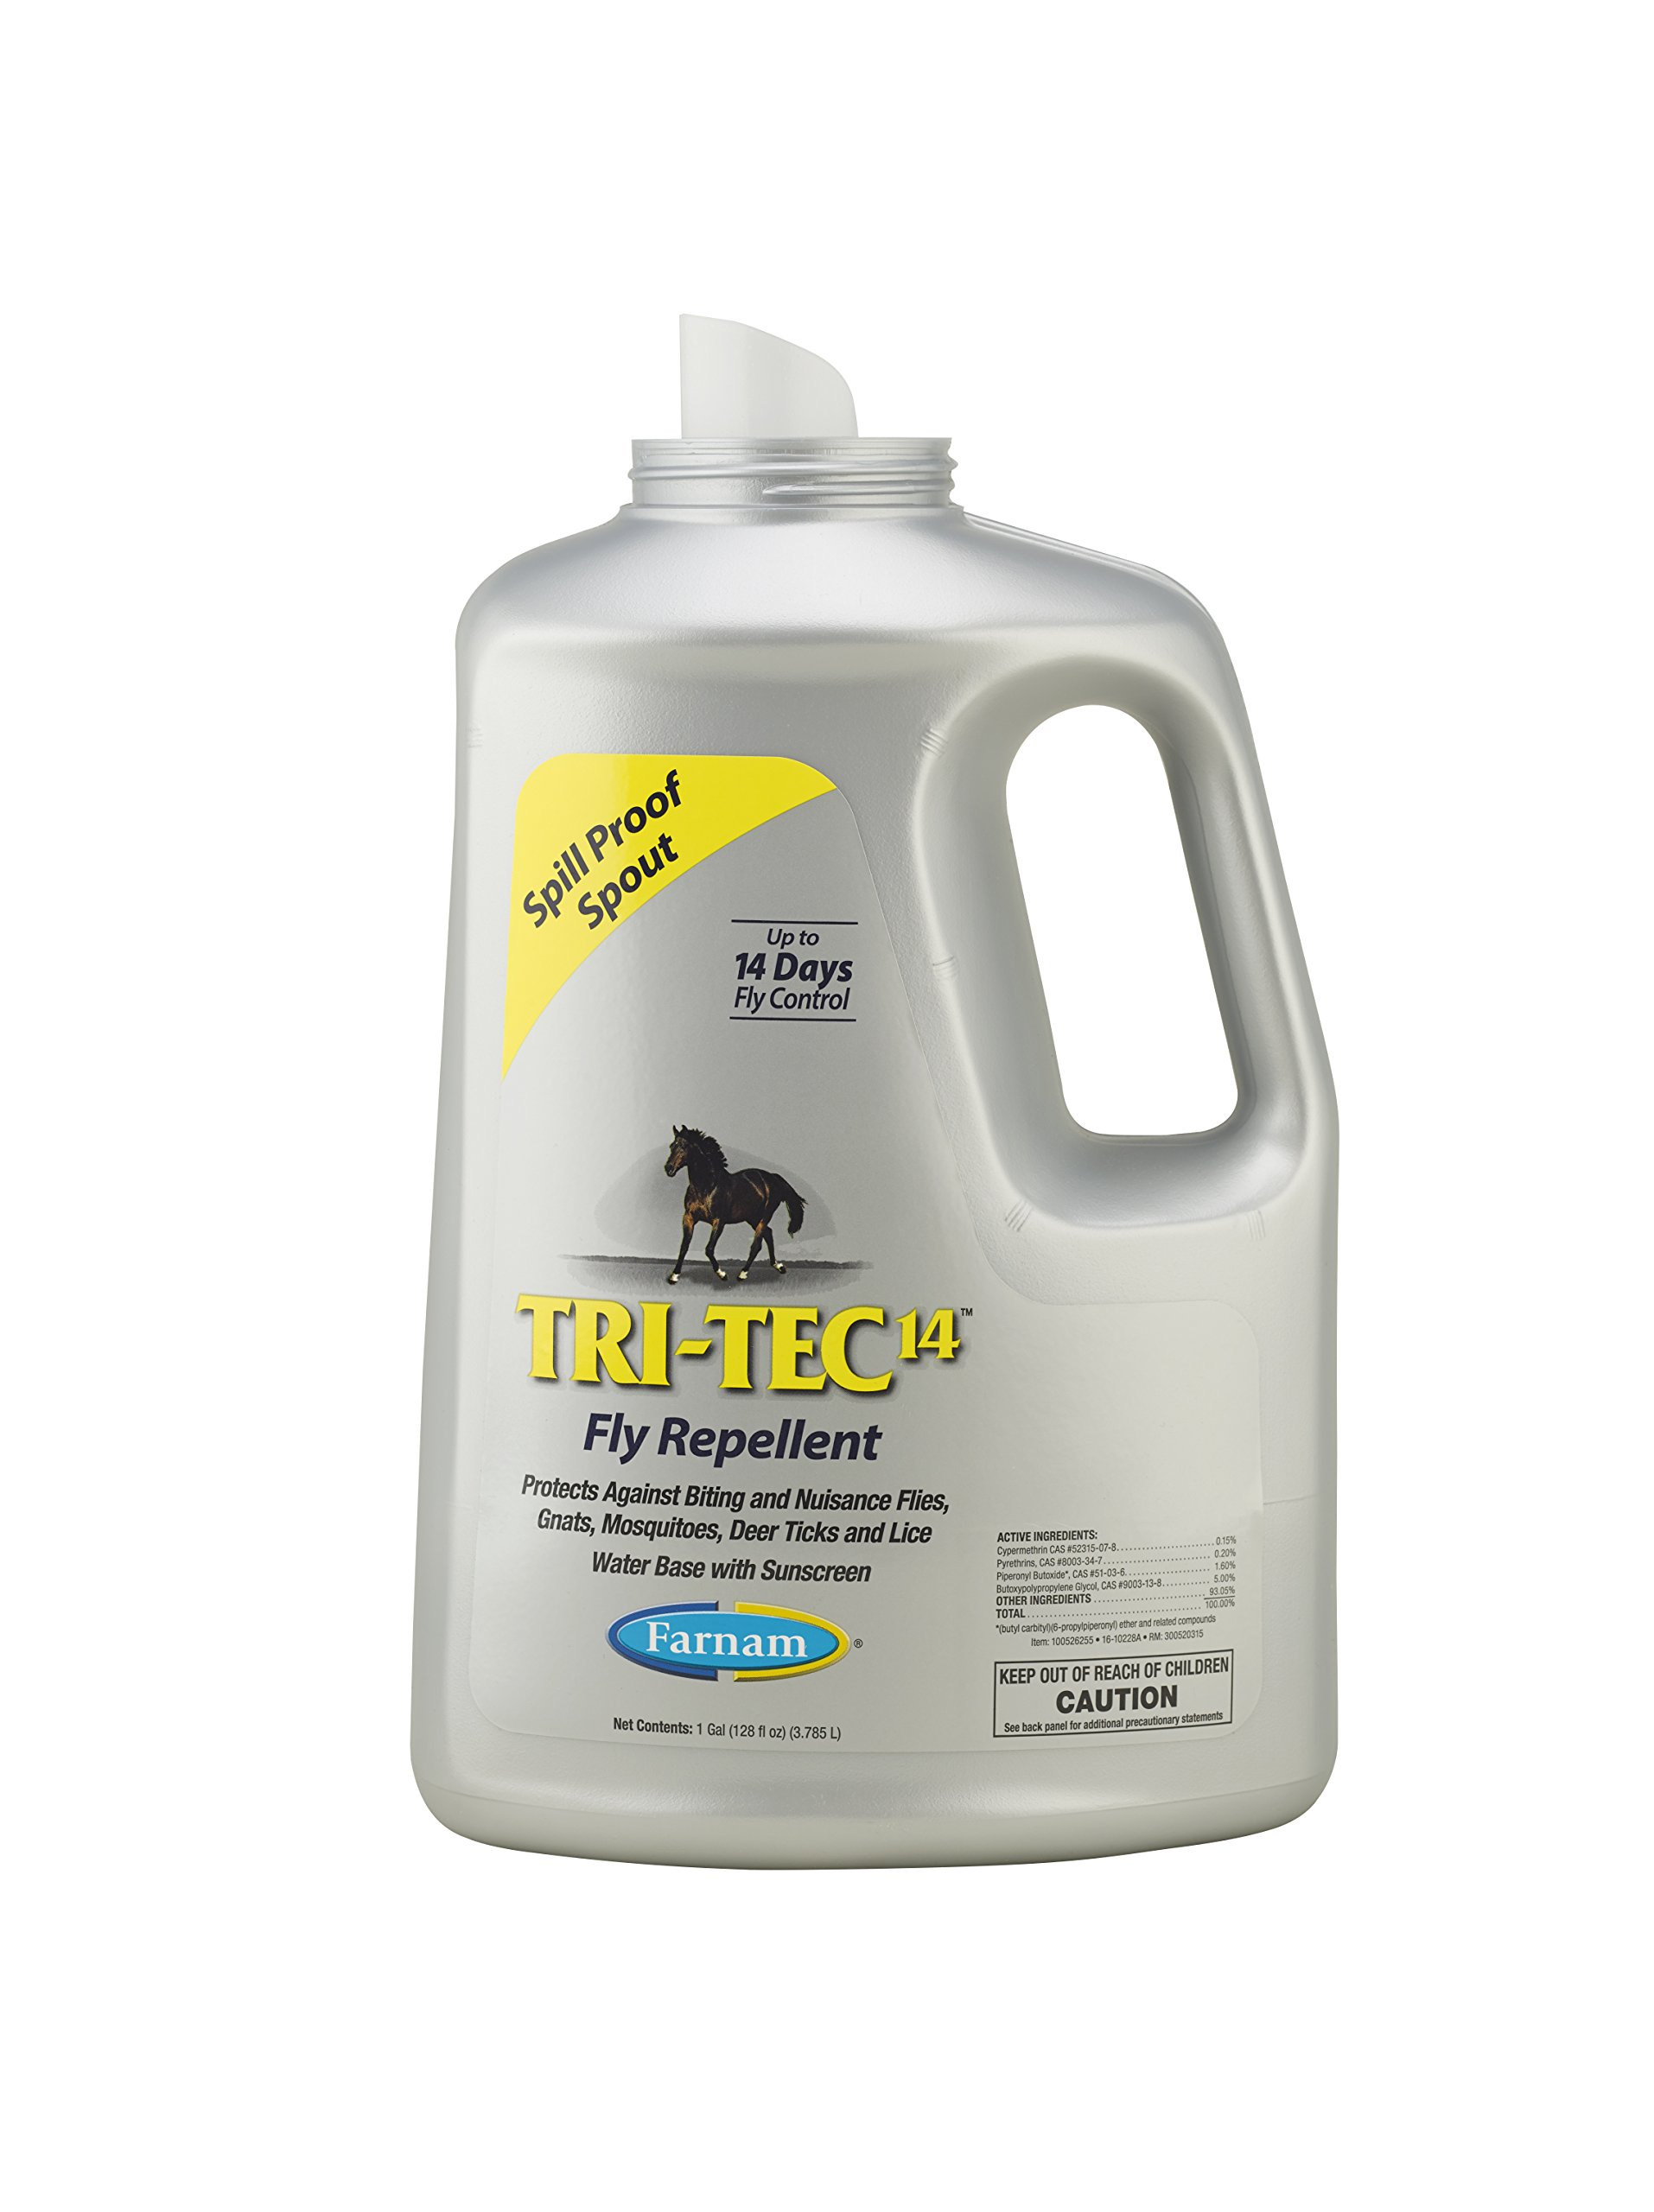 Farnam Tri-Tec 14 Fly Repellent Spray for Horses with Sunscreen 1